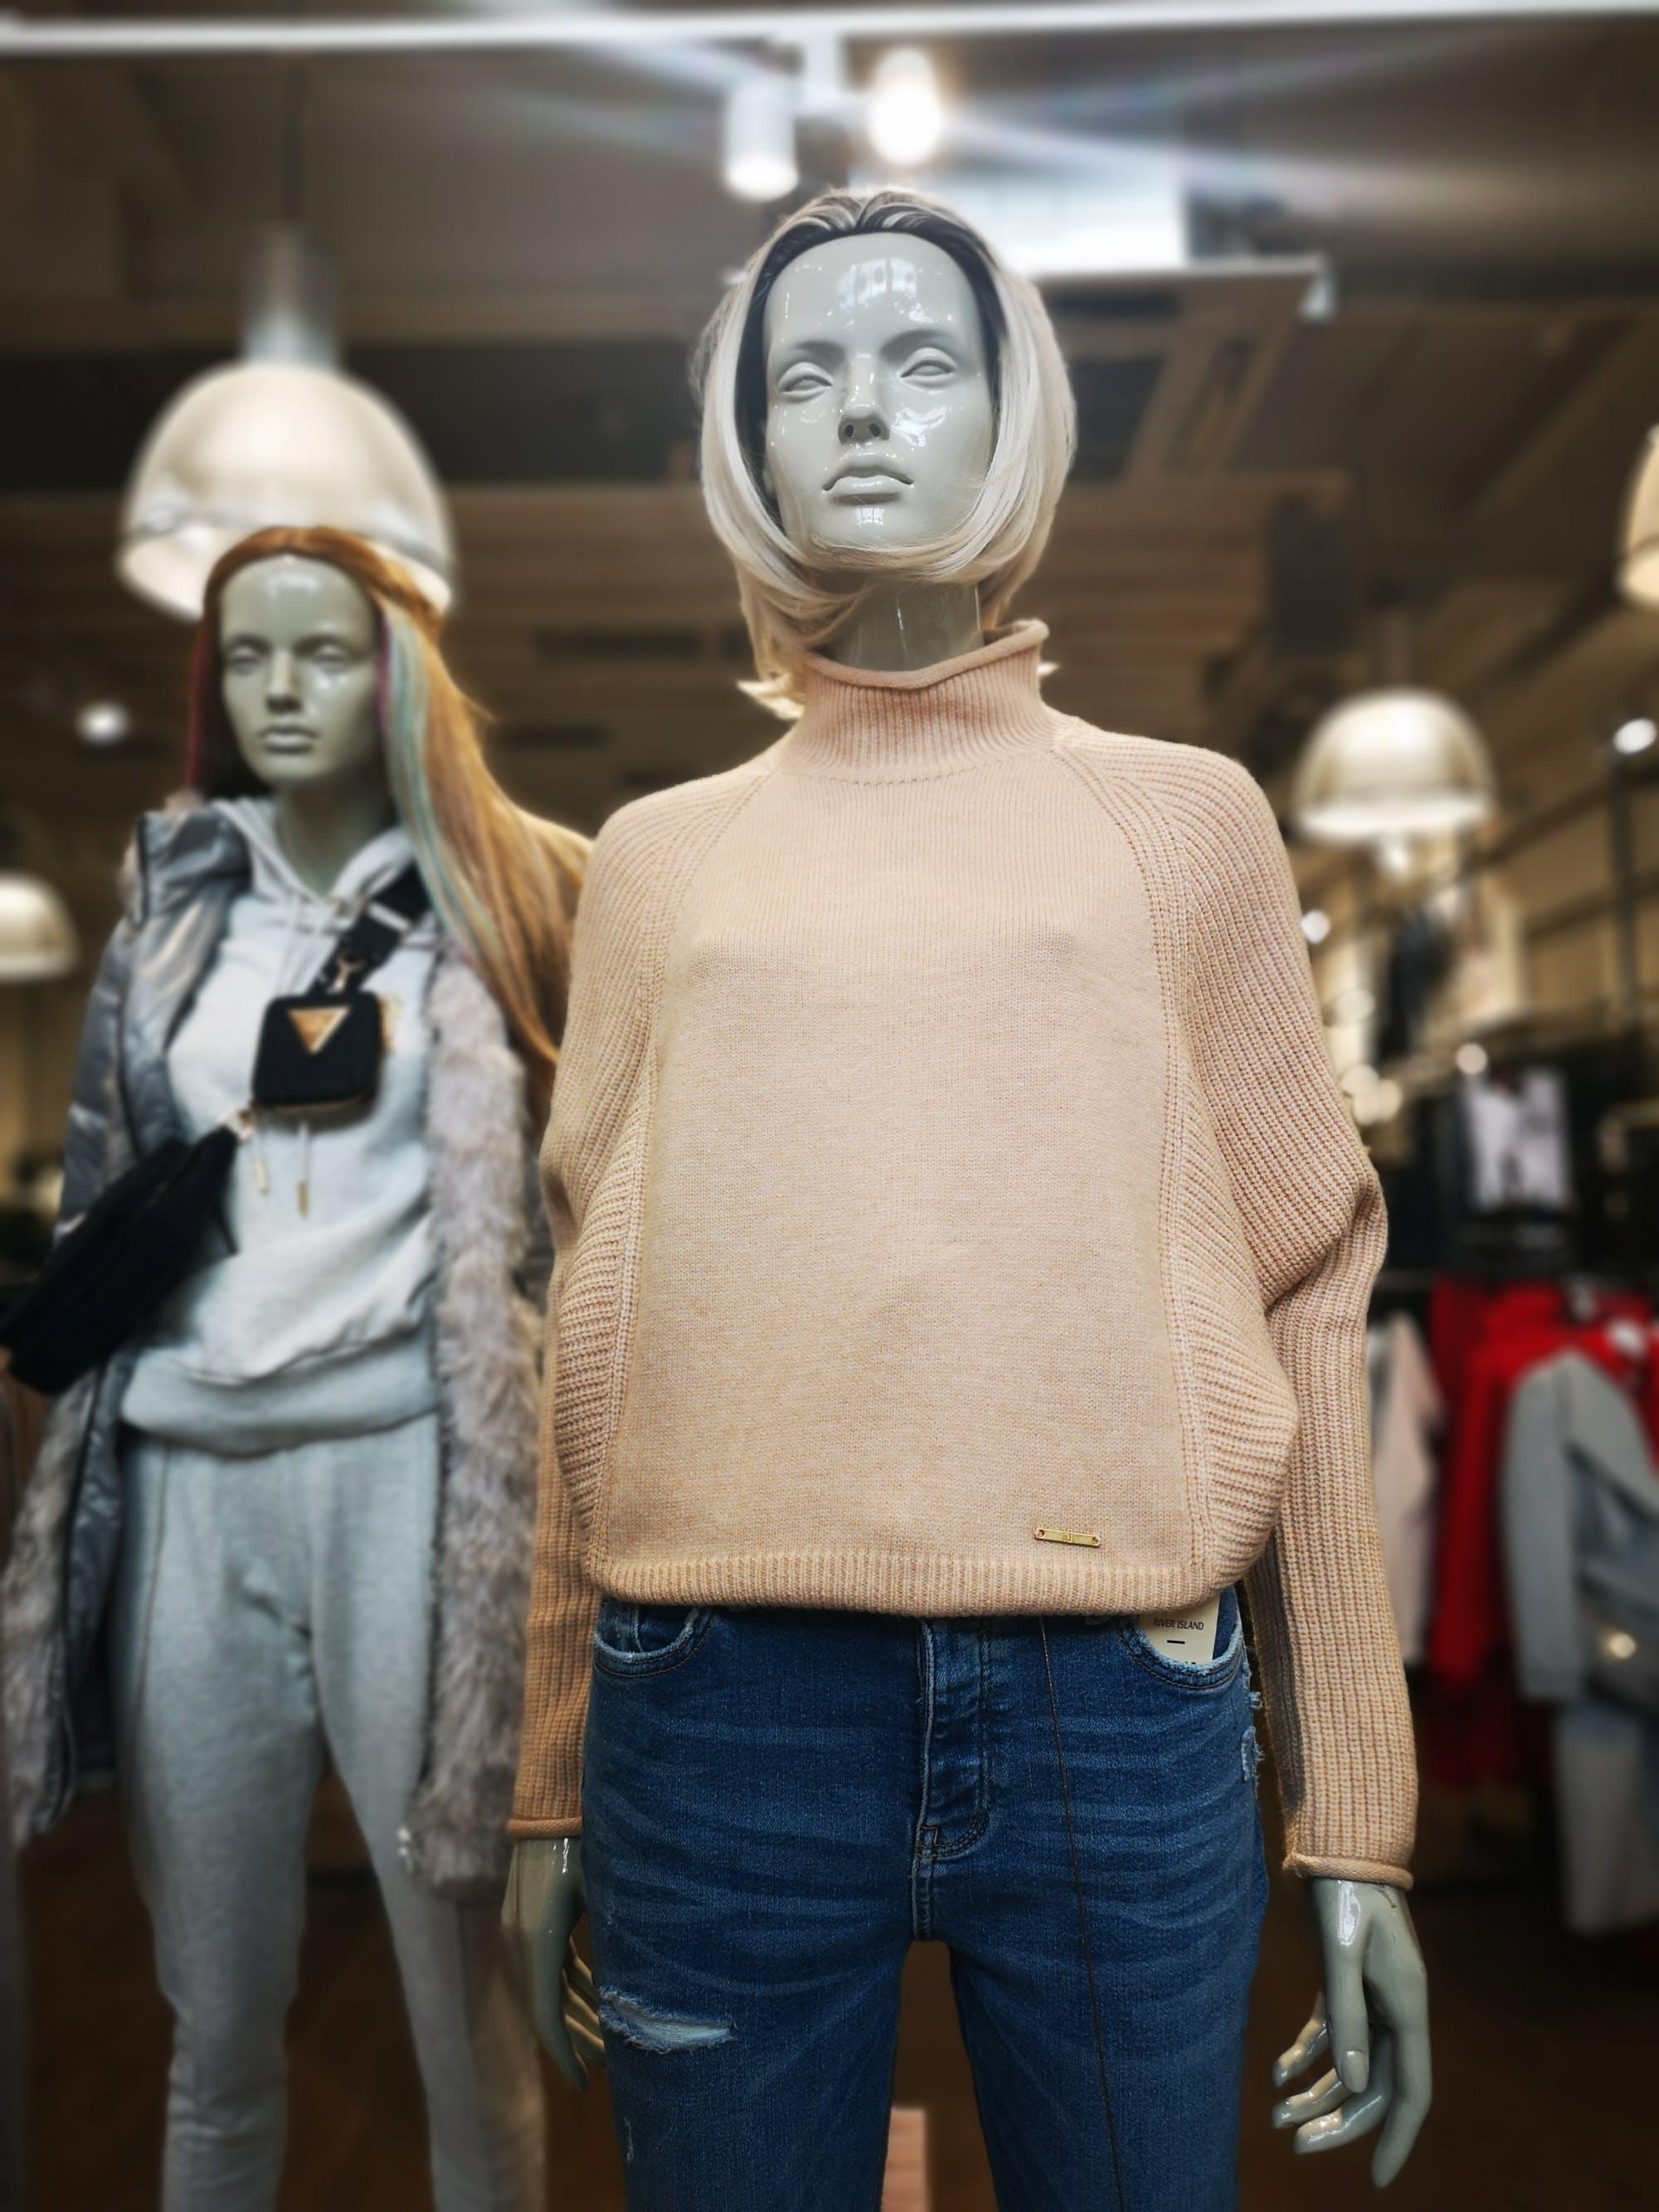 Bang on trend, warm, sexy camel coloured turtle neck jumper at River island is just luscious. £30